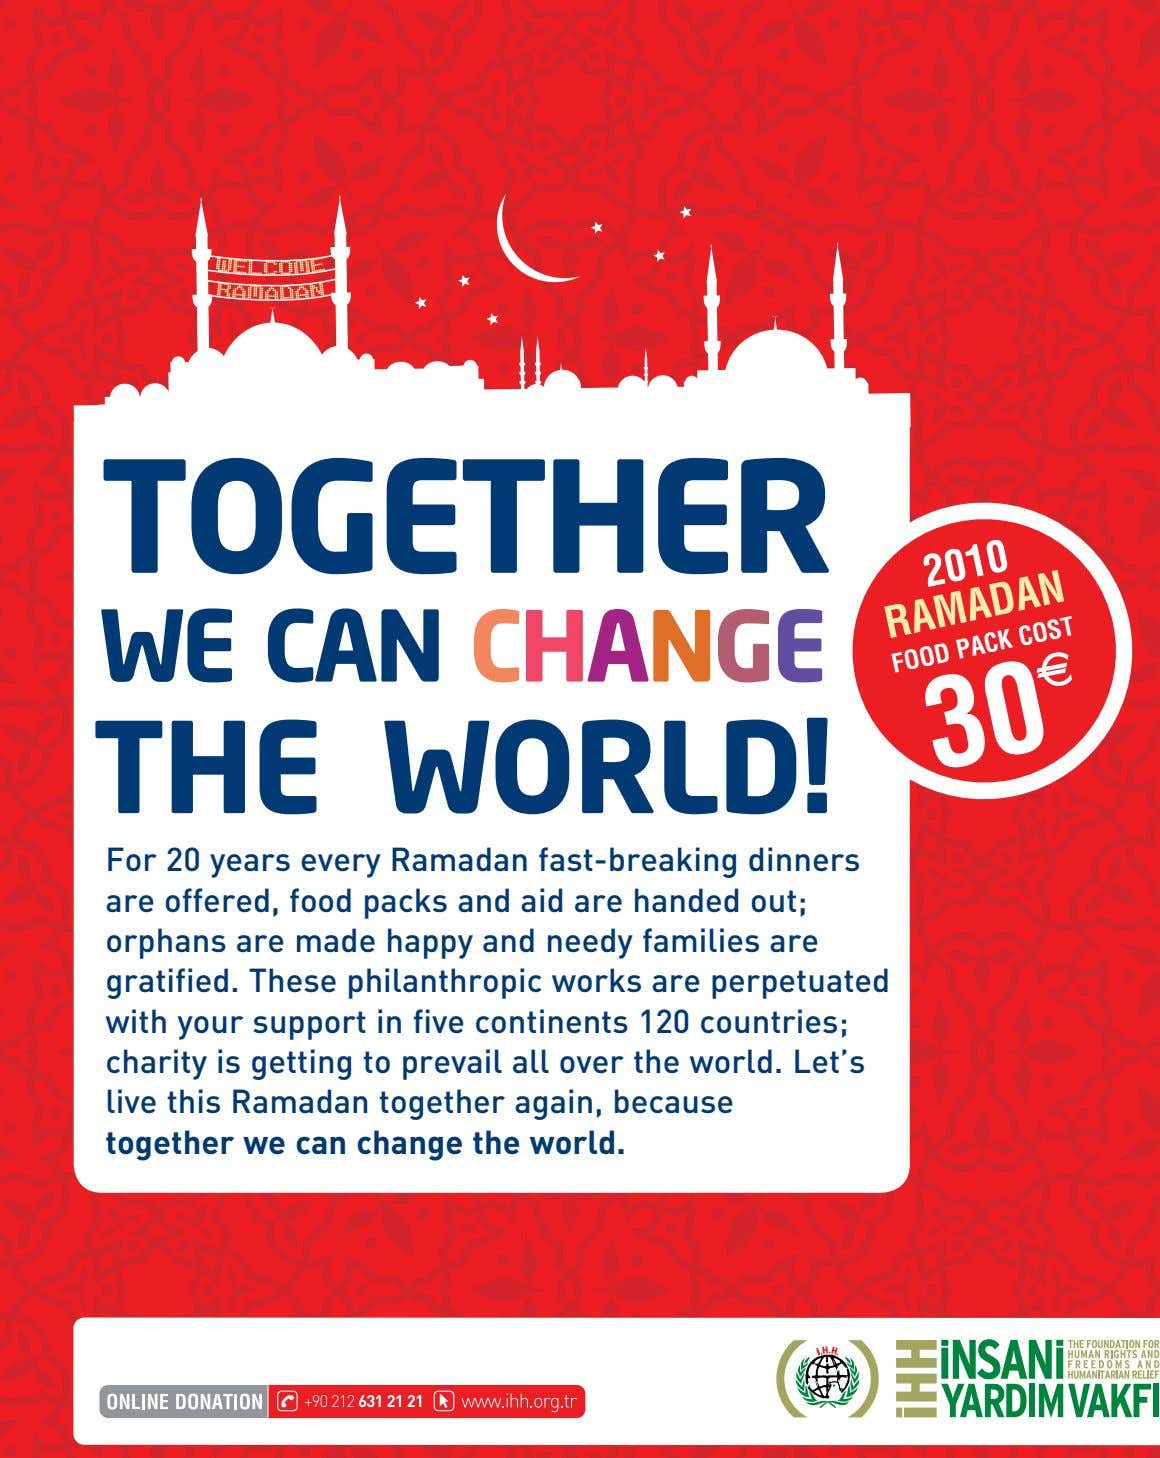 TOGETHER WE CAN CHANGE THE WORLD! 2010 RAMADAN For 20 years every Ramadan fast-breaking dinners